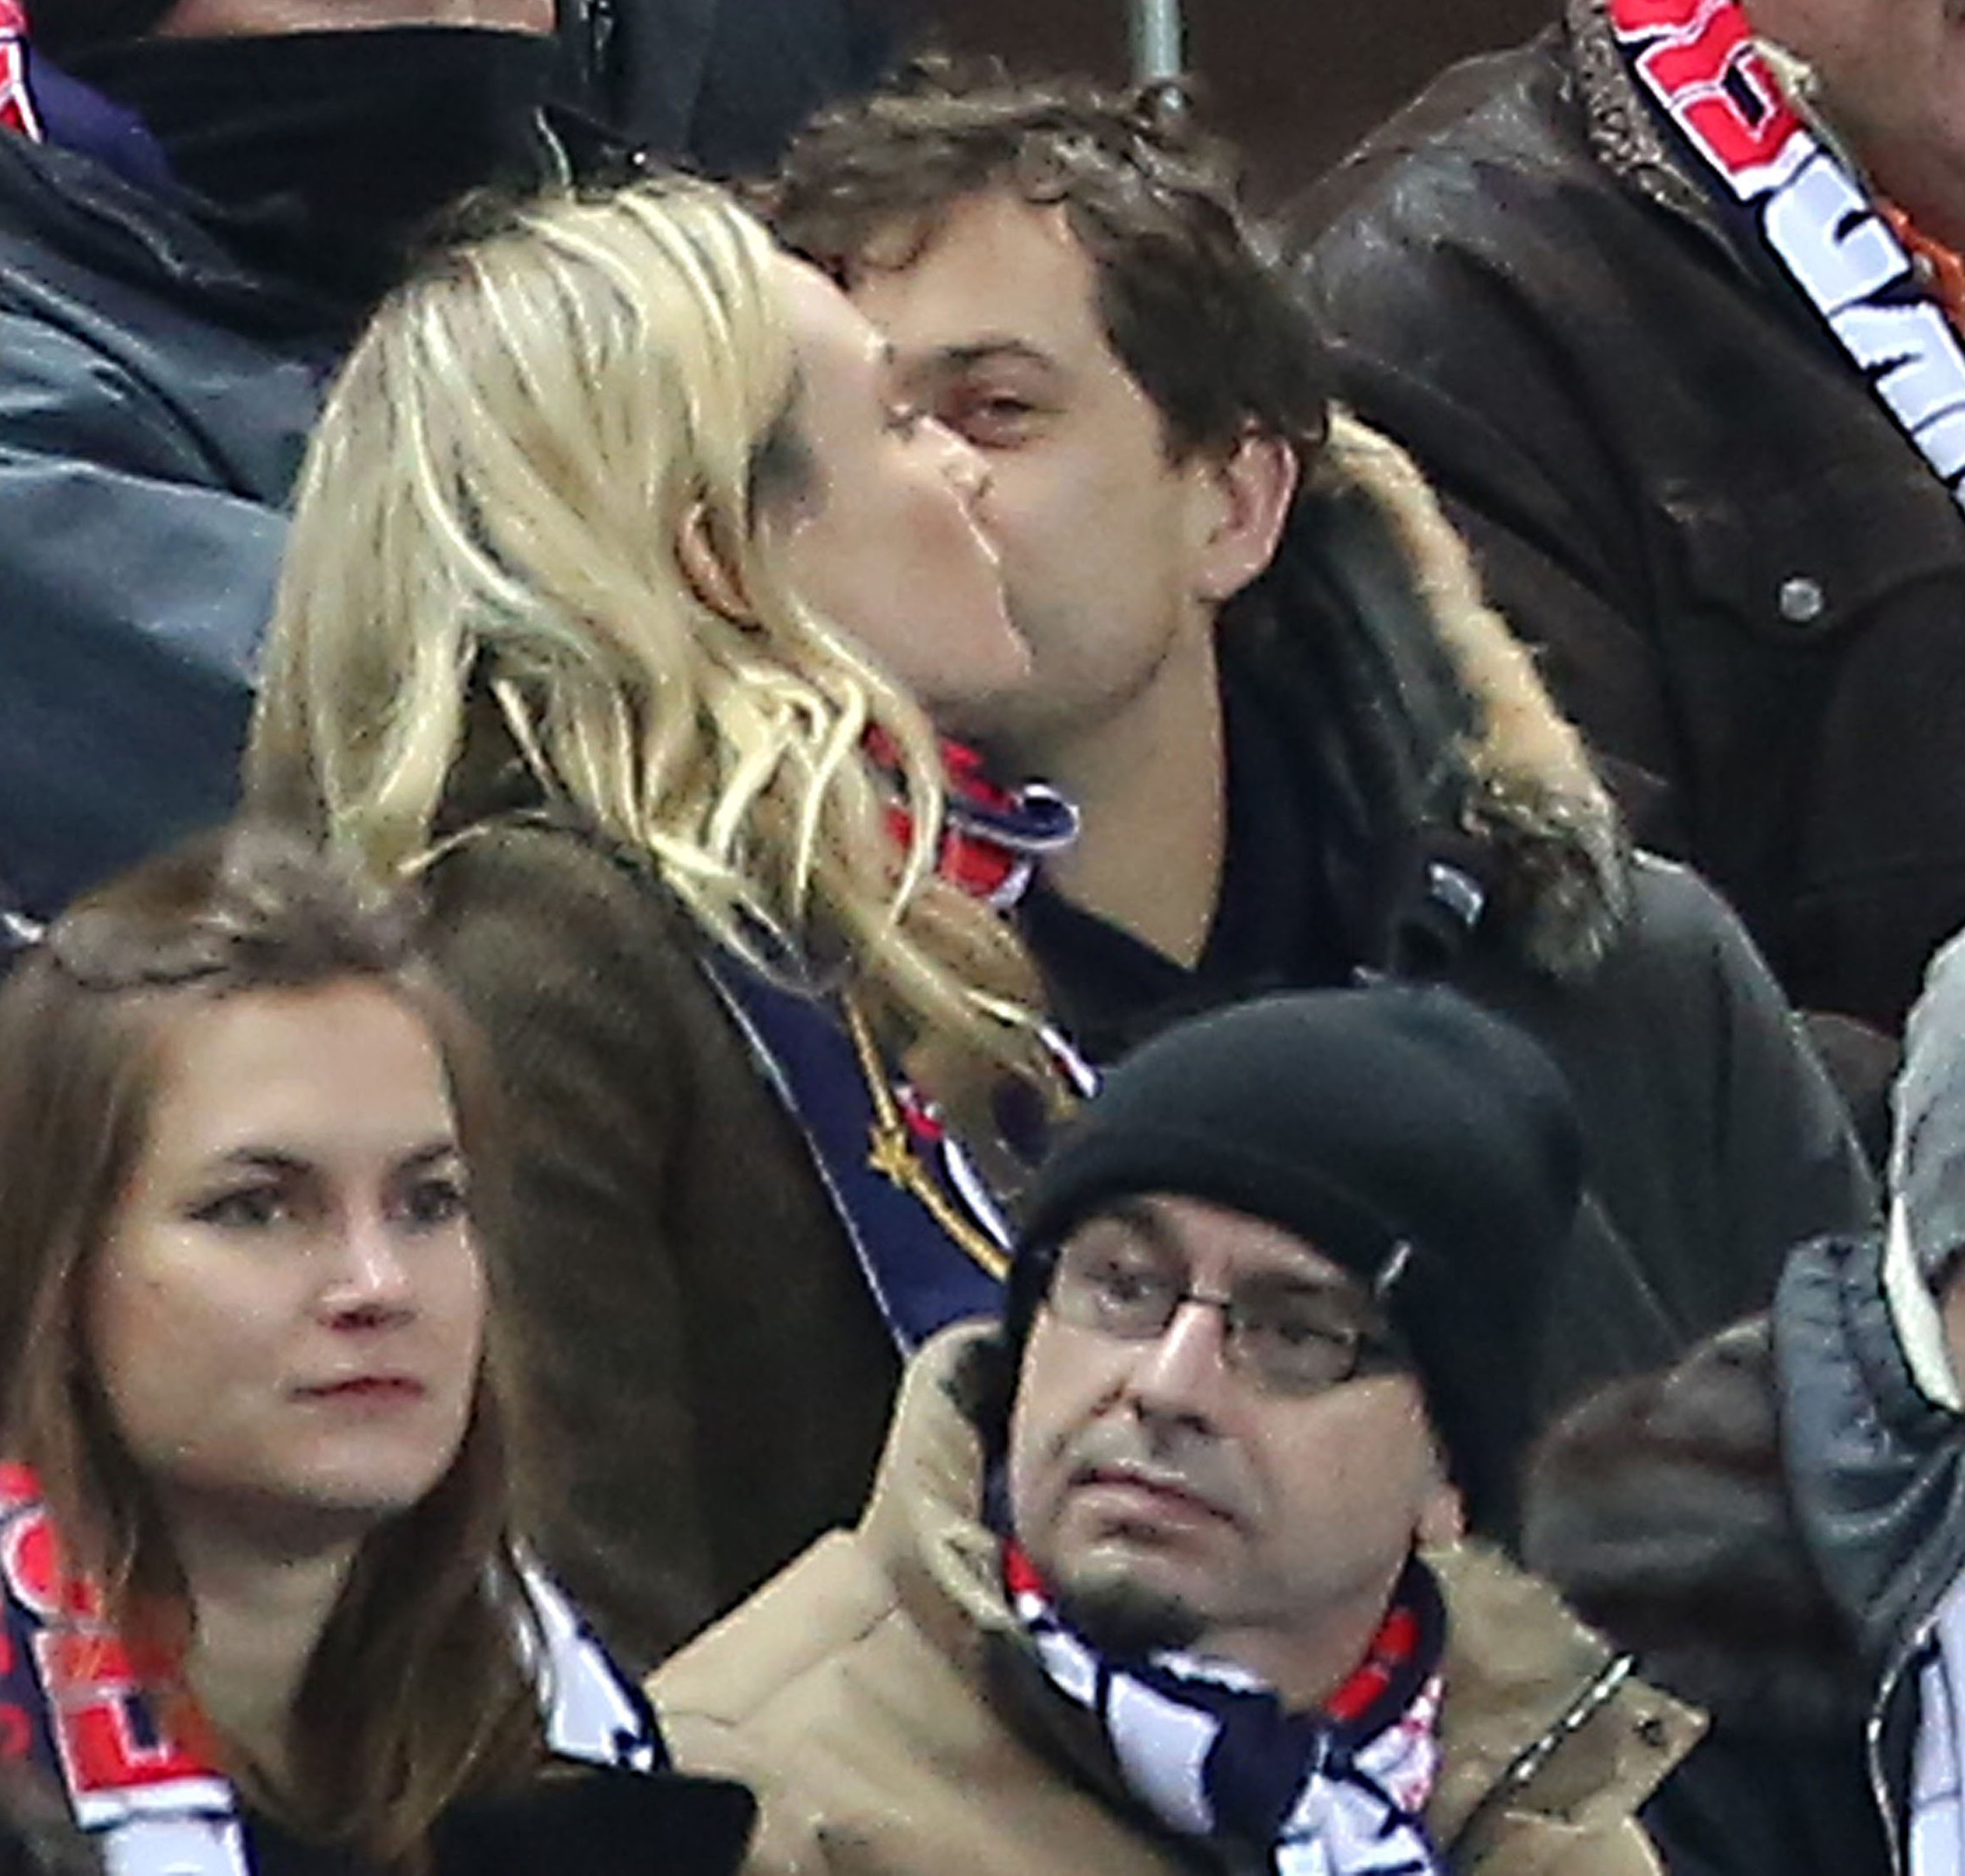 Diane Kruger and Joshua Jackson kissed at a soccer game in Paris.